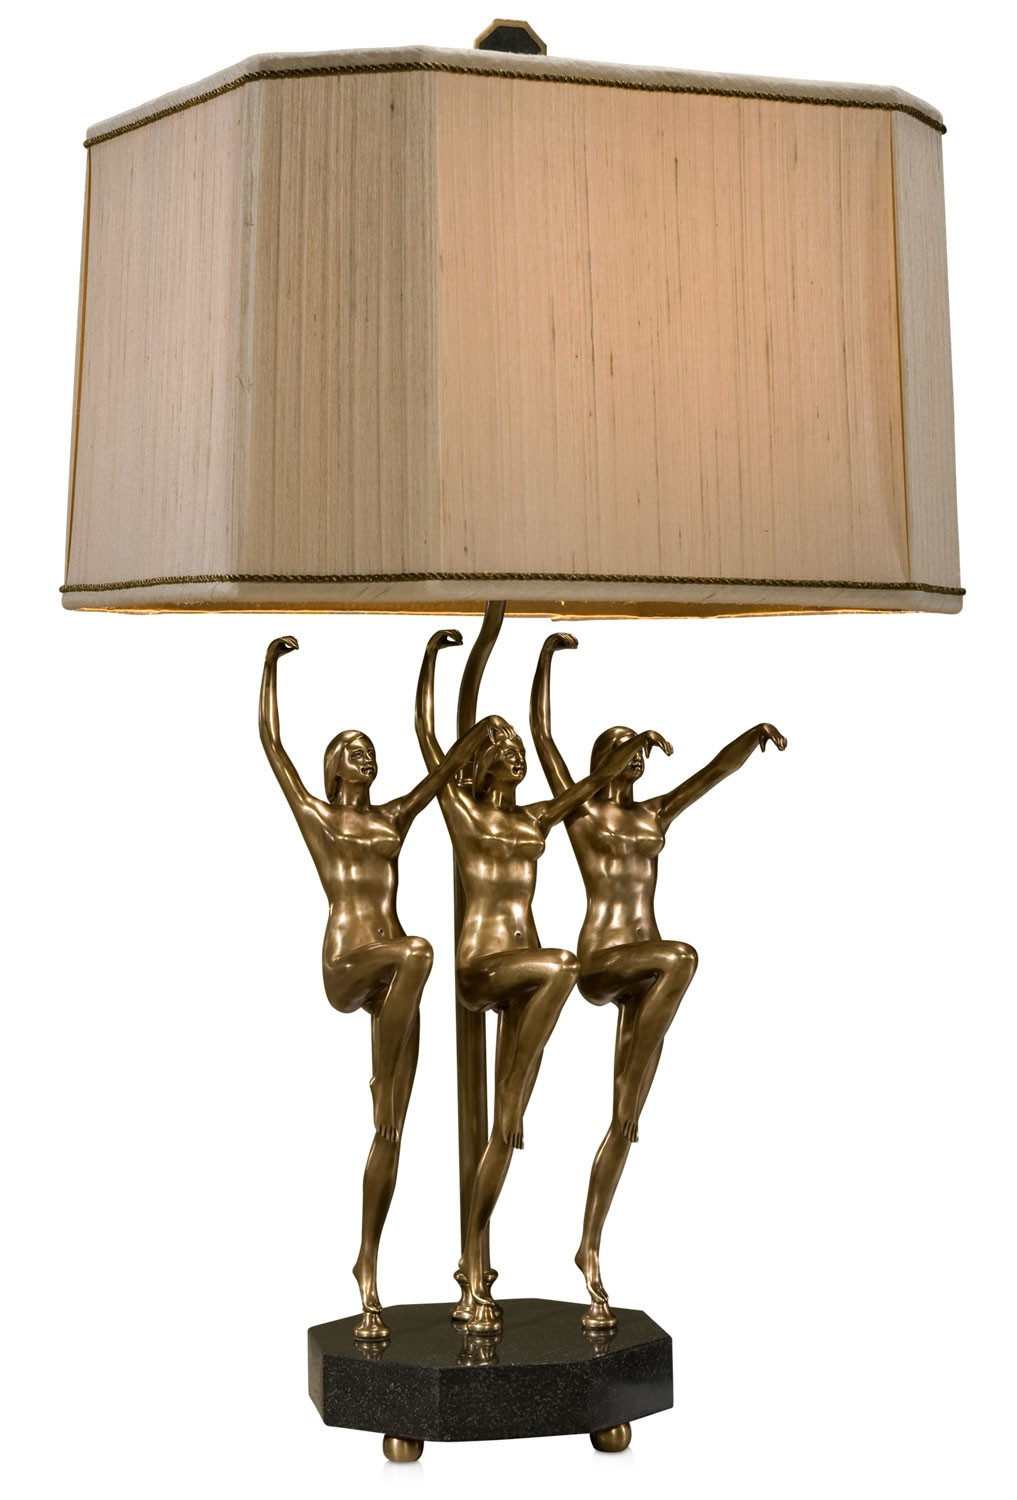 Brass Art Deco table lamp